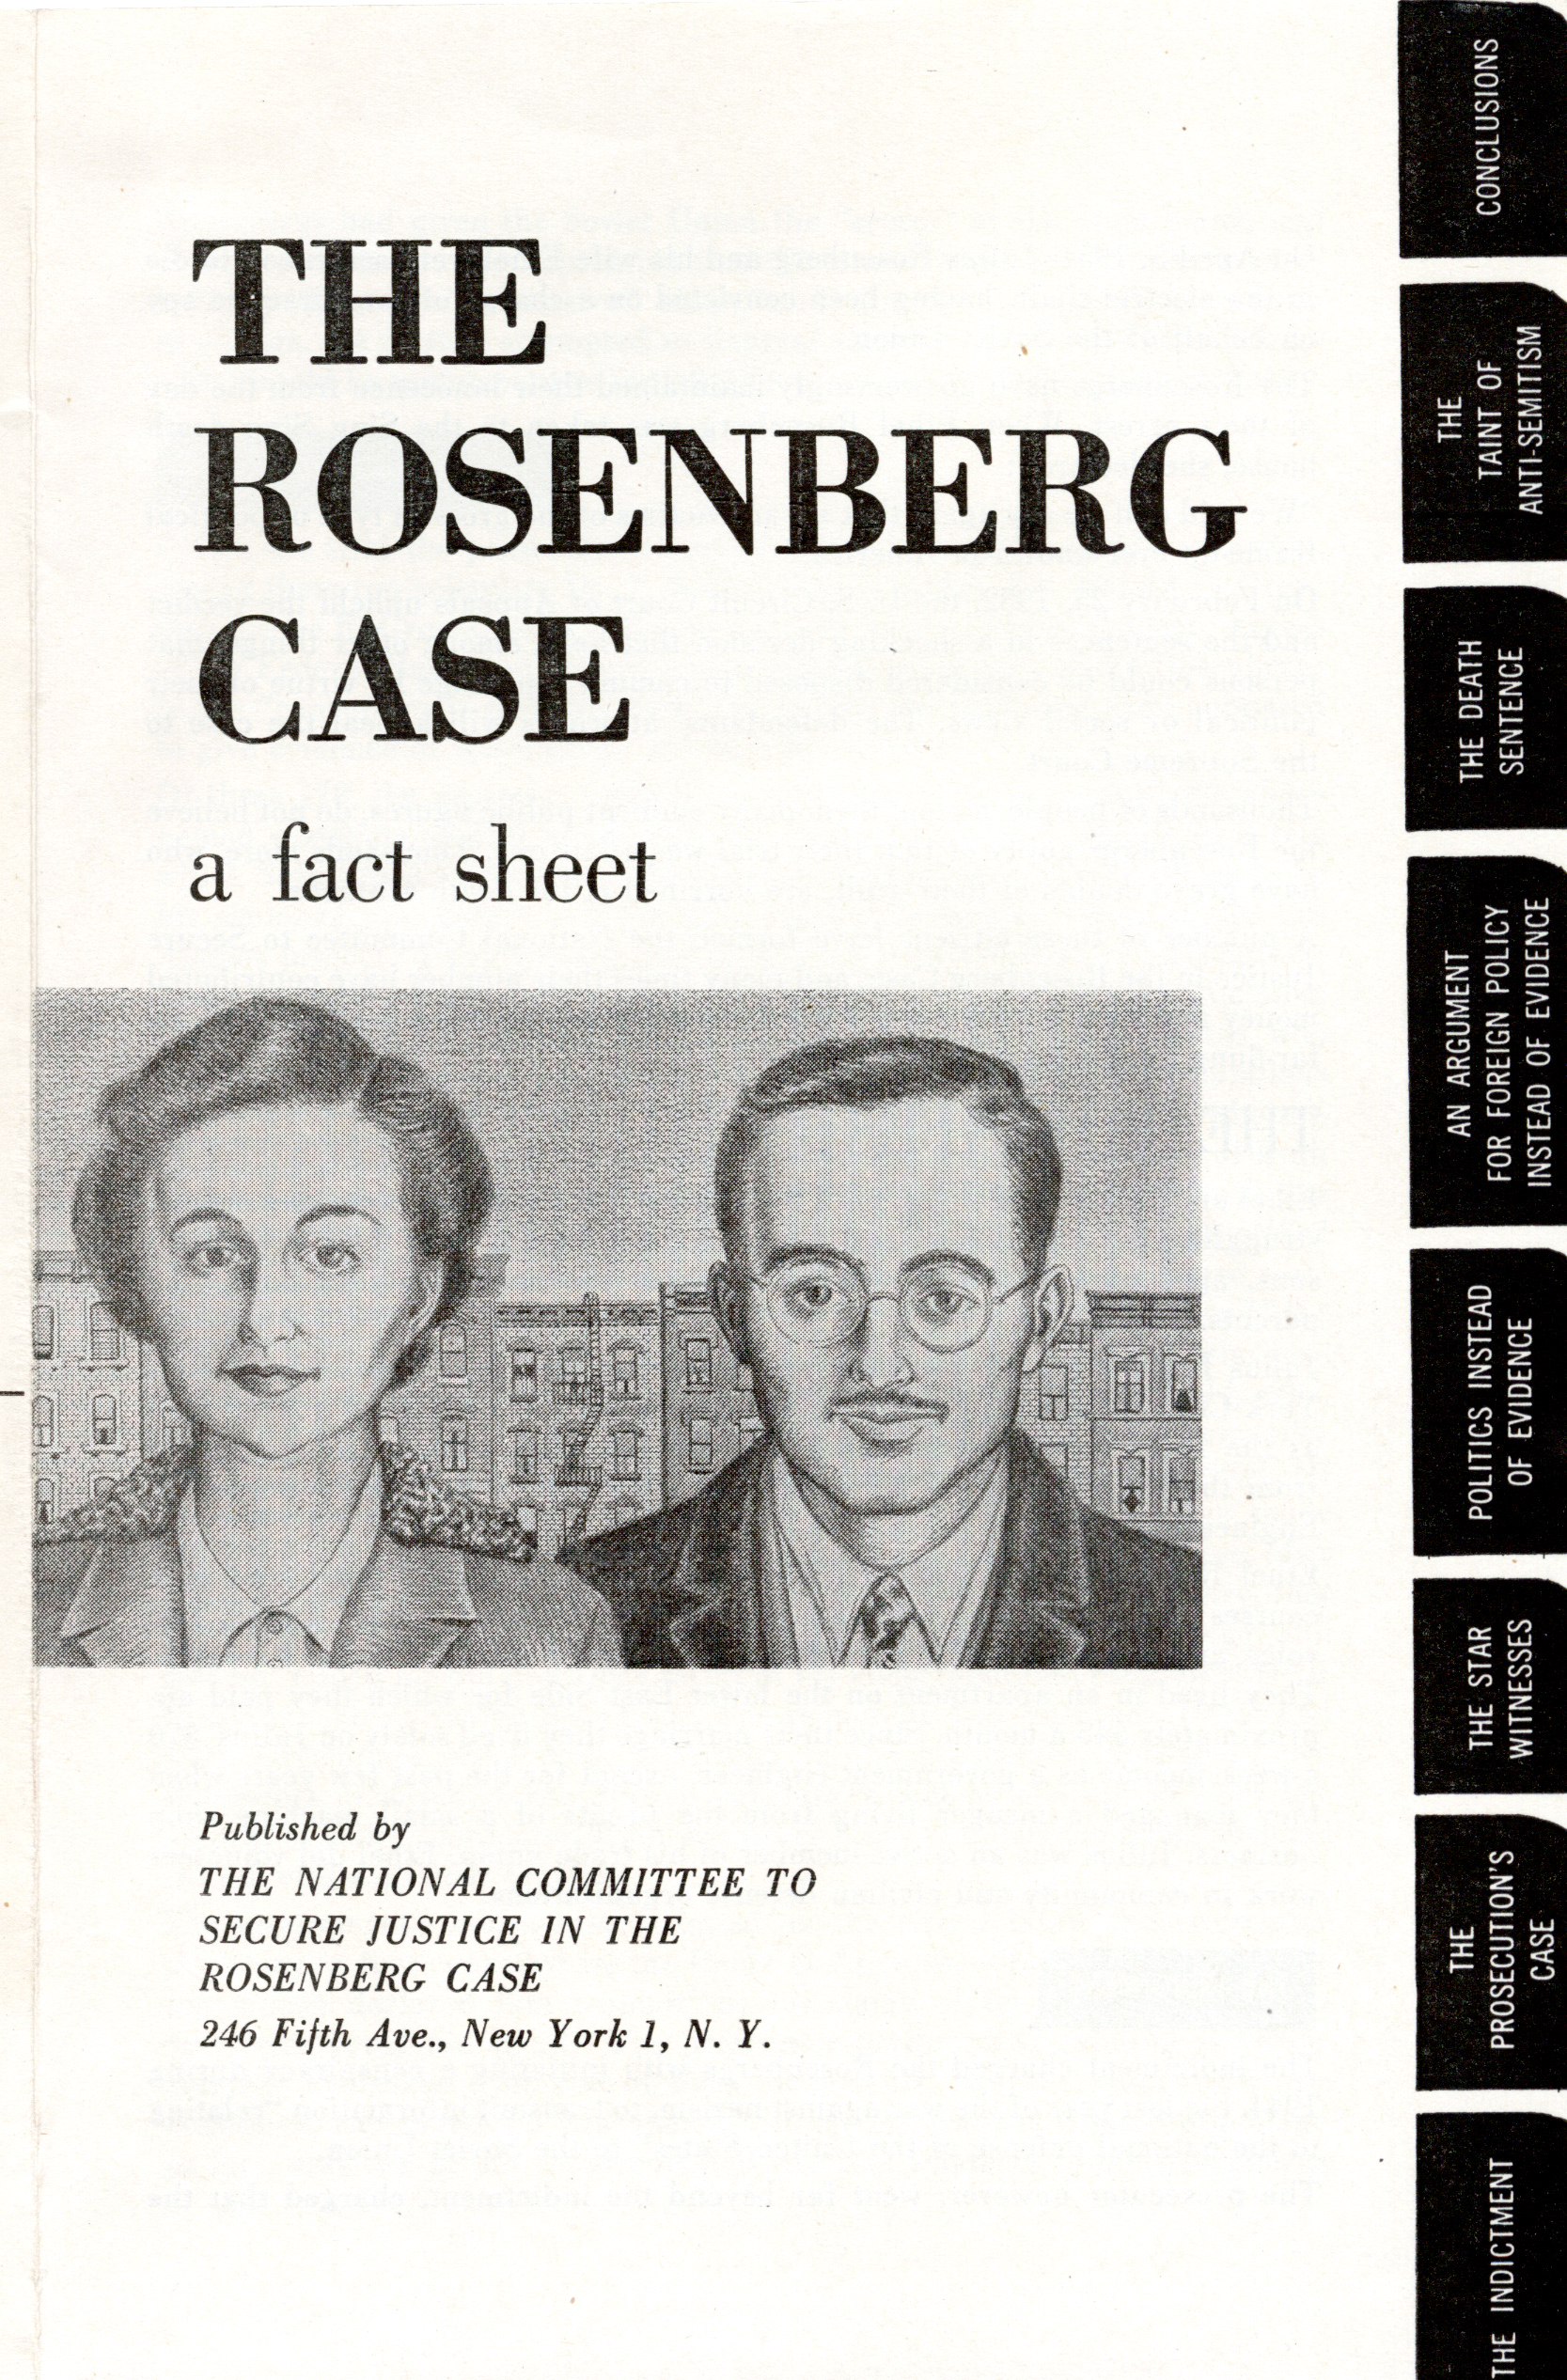 image of front cover of